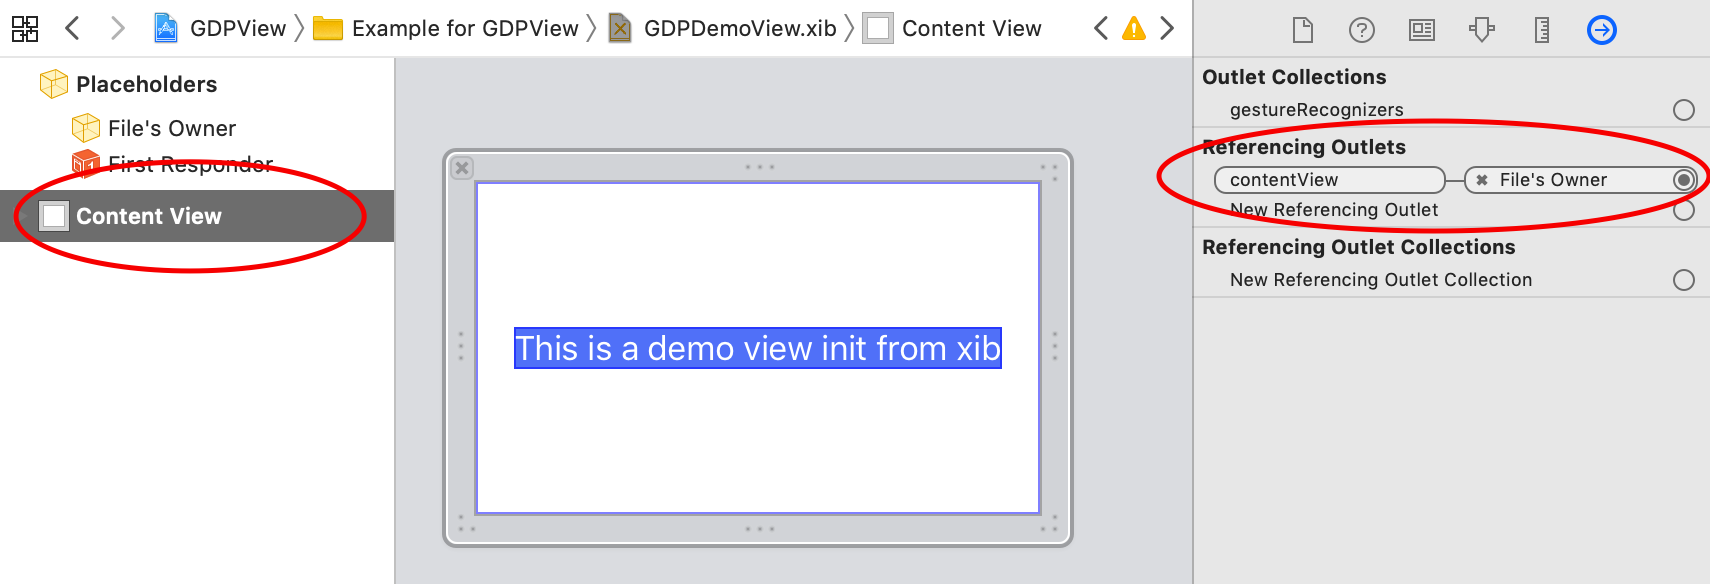 2. link contentView of files owner to the view in the xib